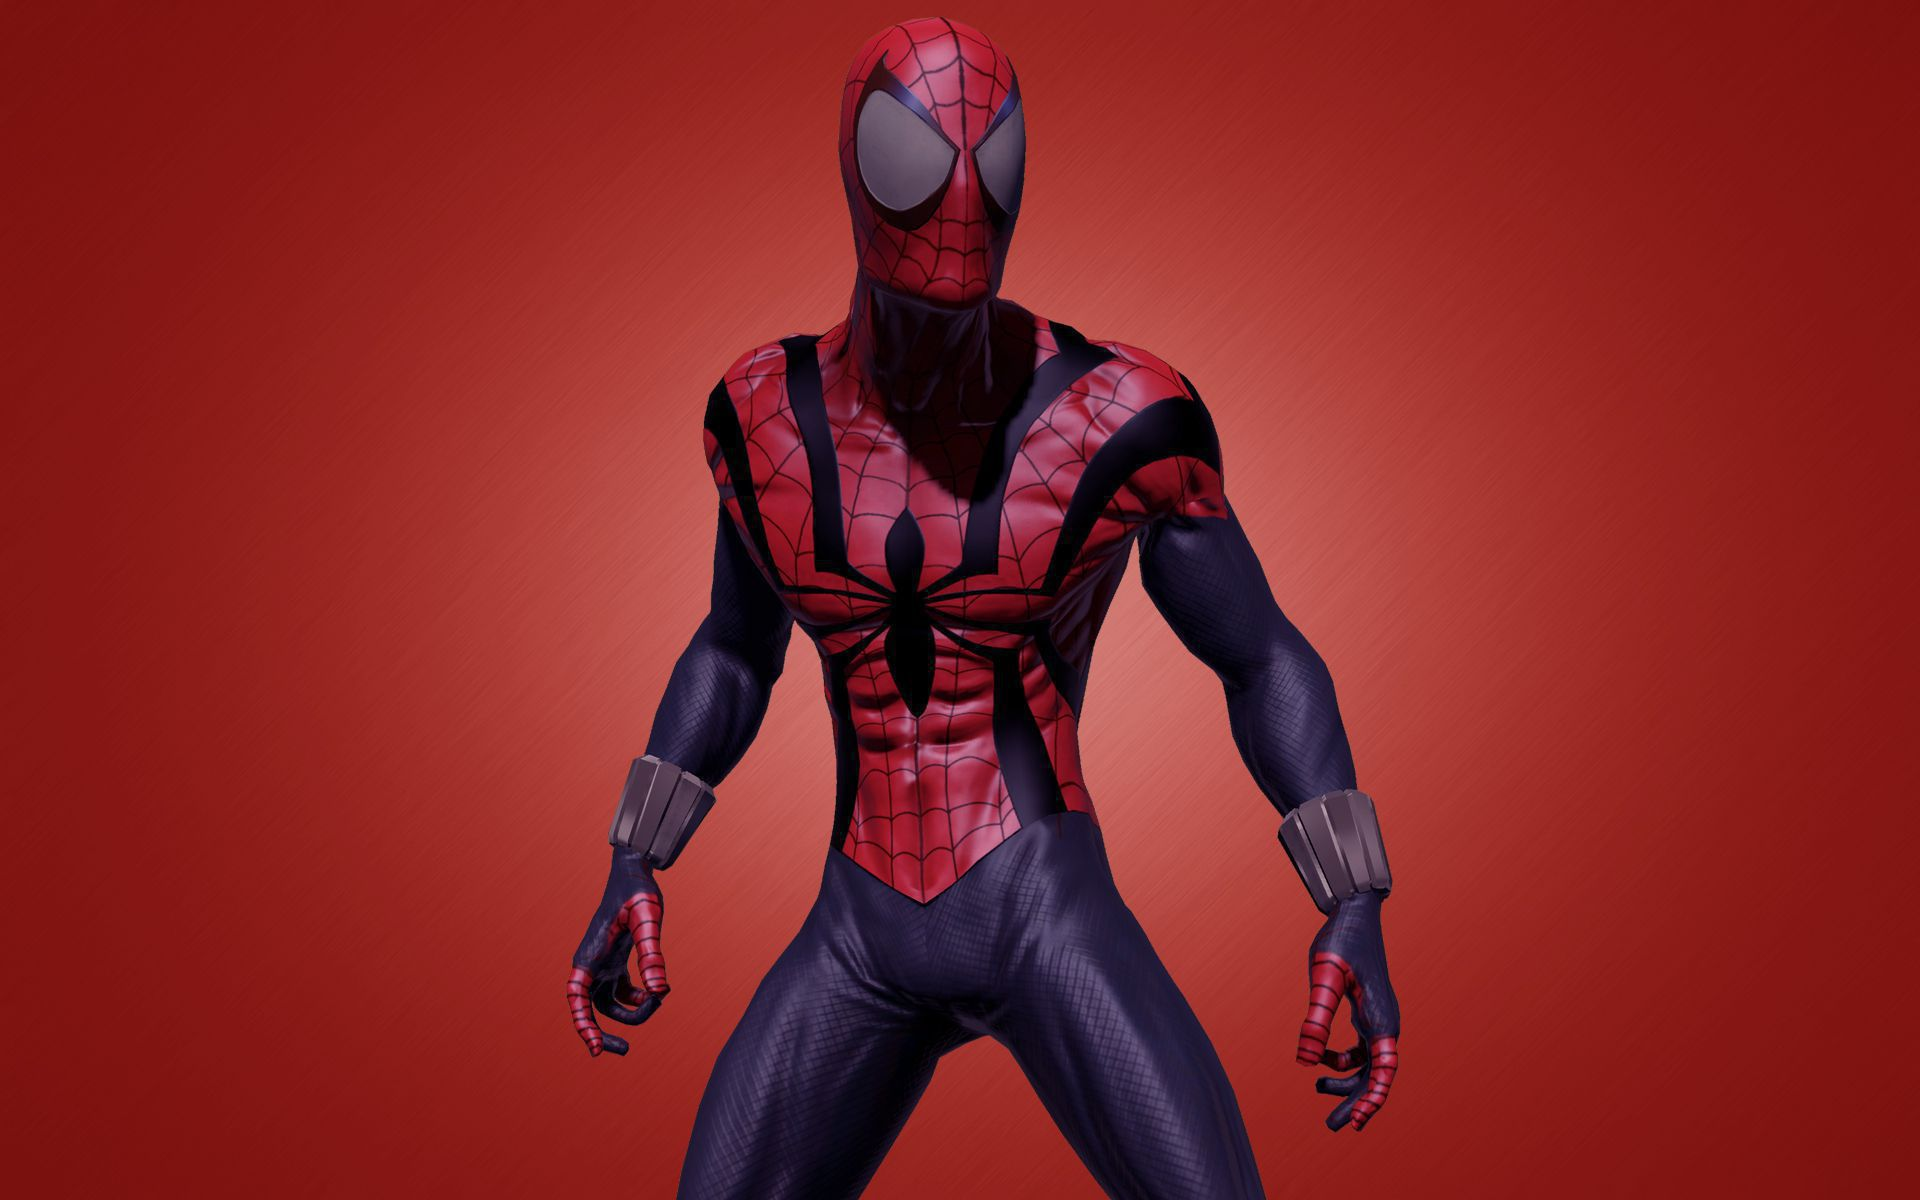 Spider Man Wallpaper Pack